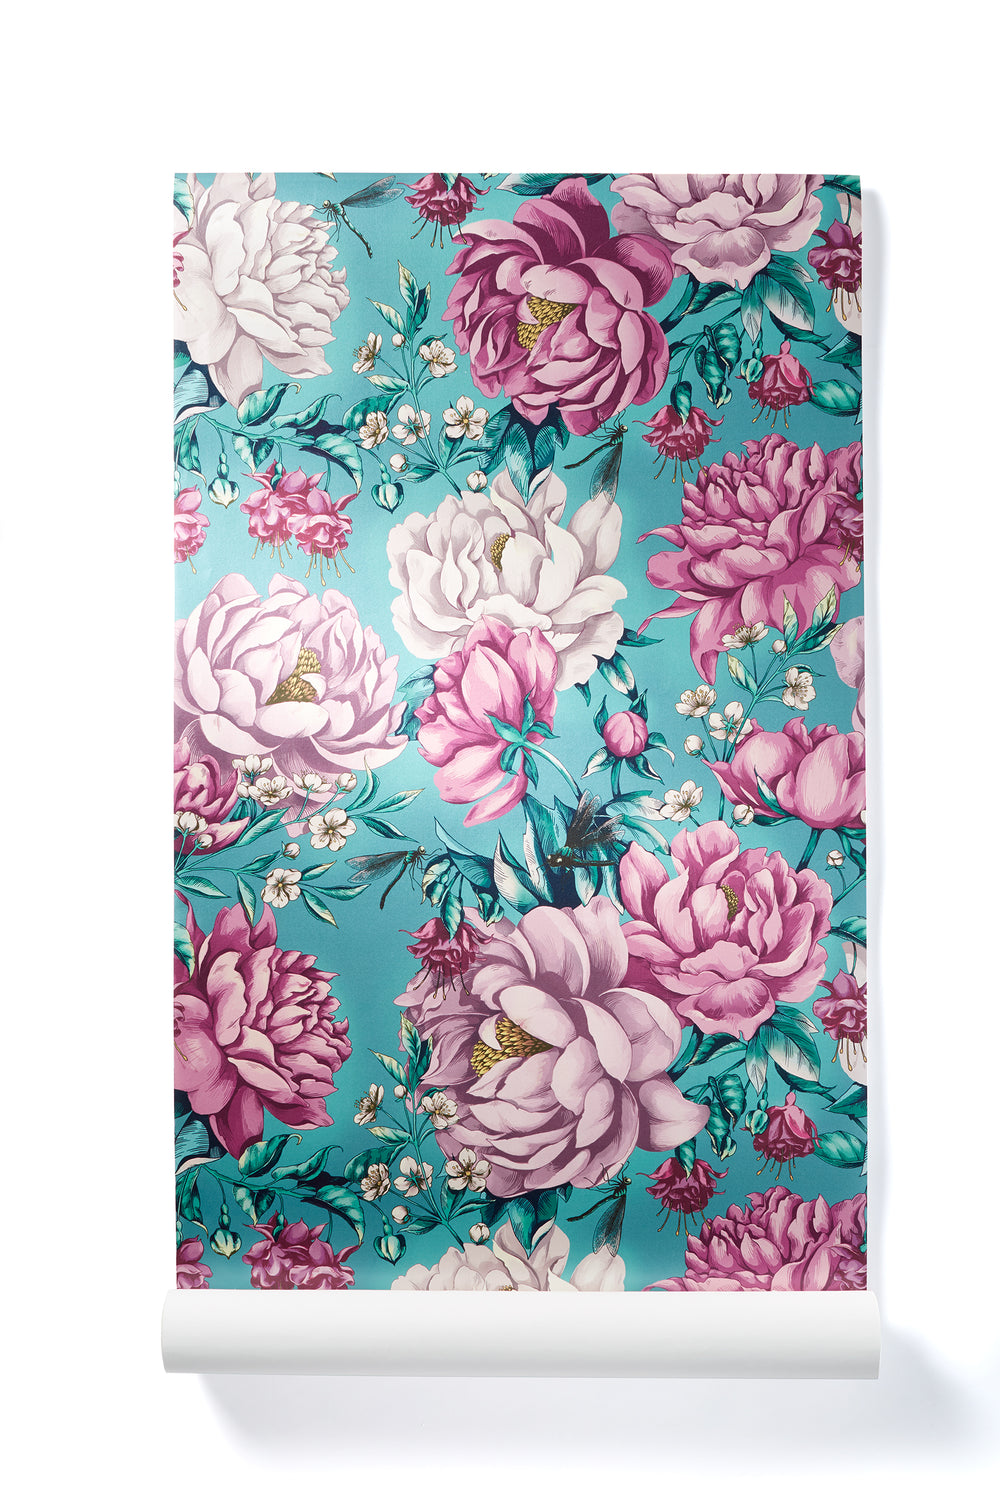 Magical Awakening - Oversized Teal & Pink Peony Floral Wallpaper, Shimmer Finish